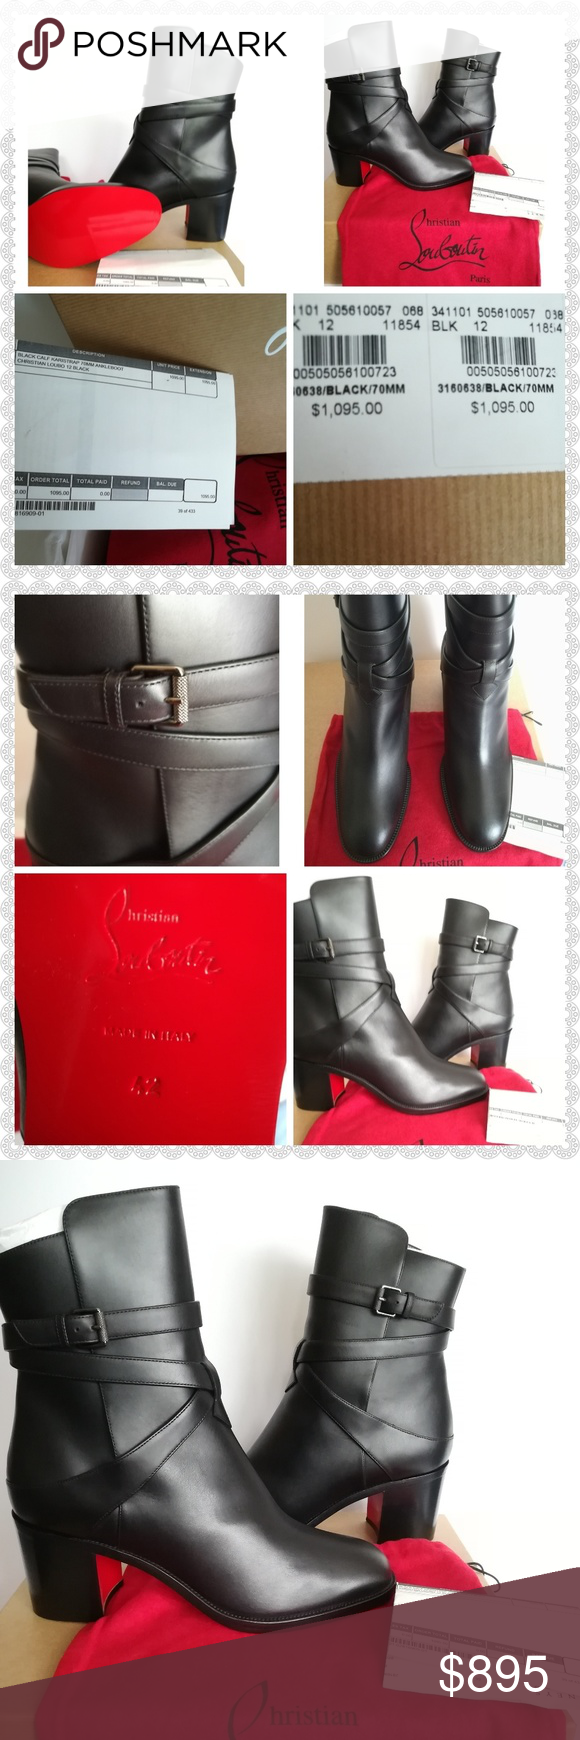 c1ccabcd294c CHRISTIAN LOUBOUTIN Karistrap Leather Ankle Boots ✓️NEW🌼Size 42 (US 12) but